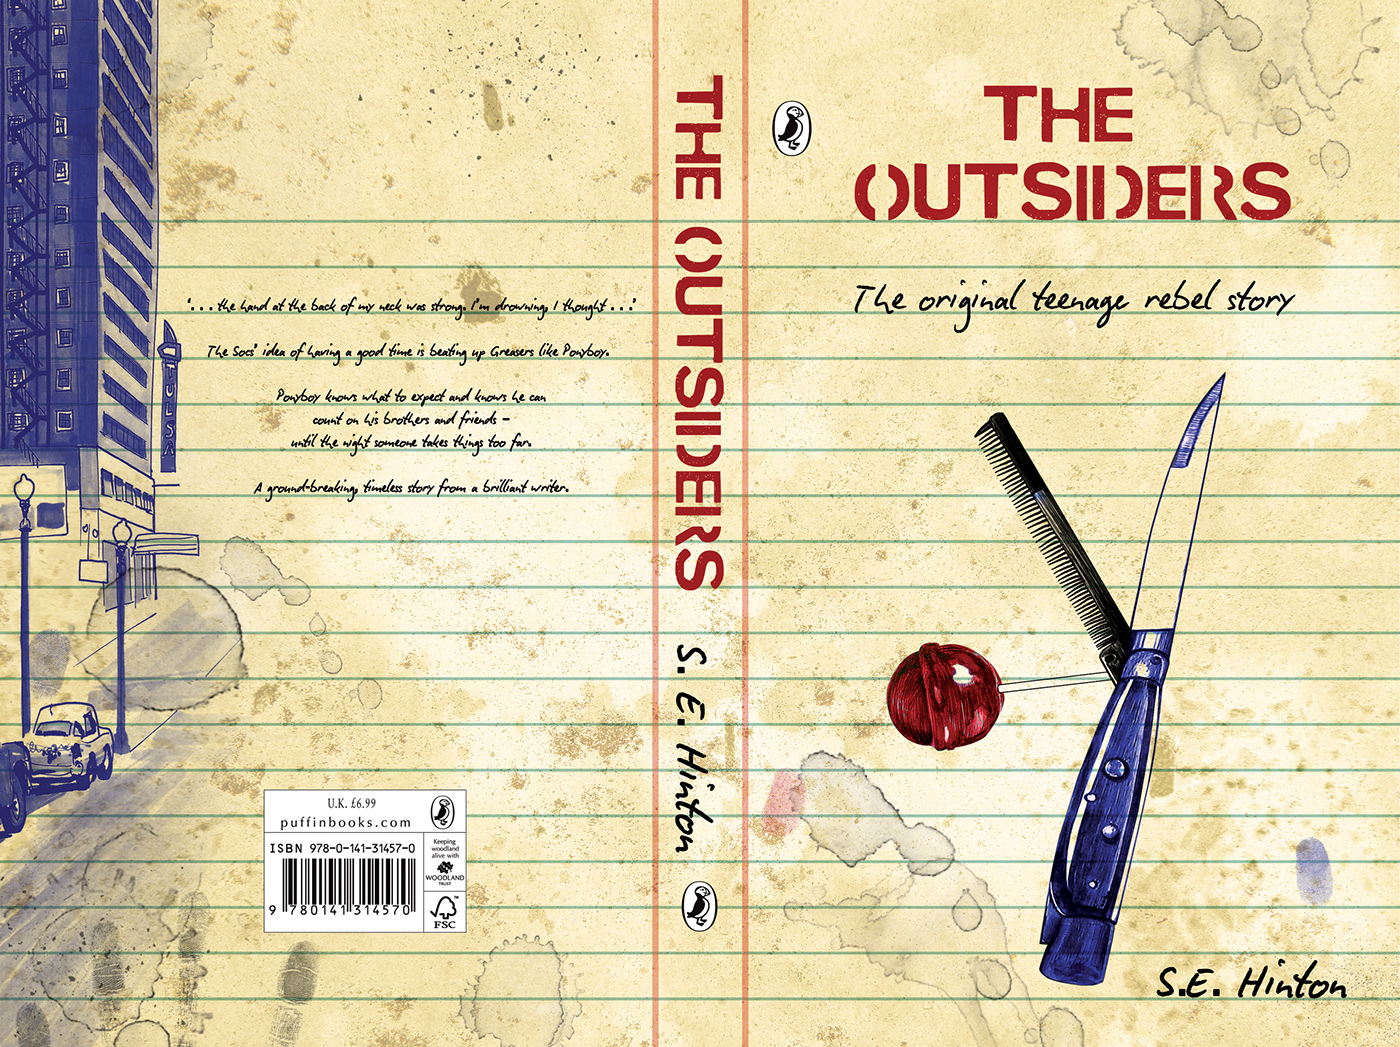 the outsiders movie vs book Objectives: -students will compare and contrast the film adaptation and its inspiration -students will watch, analyze, and take notes about a film.